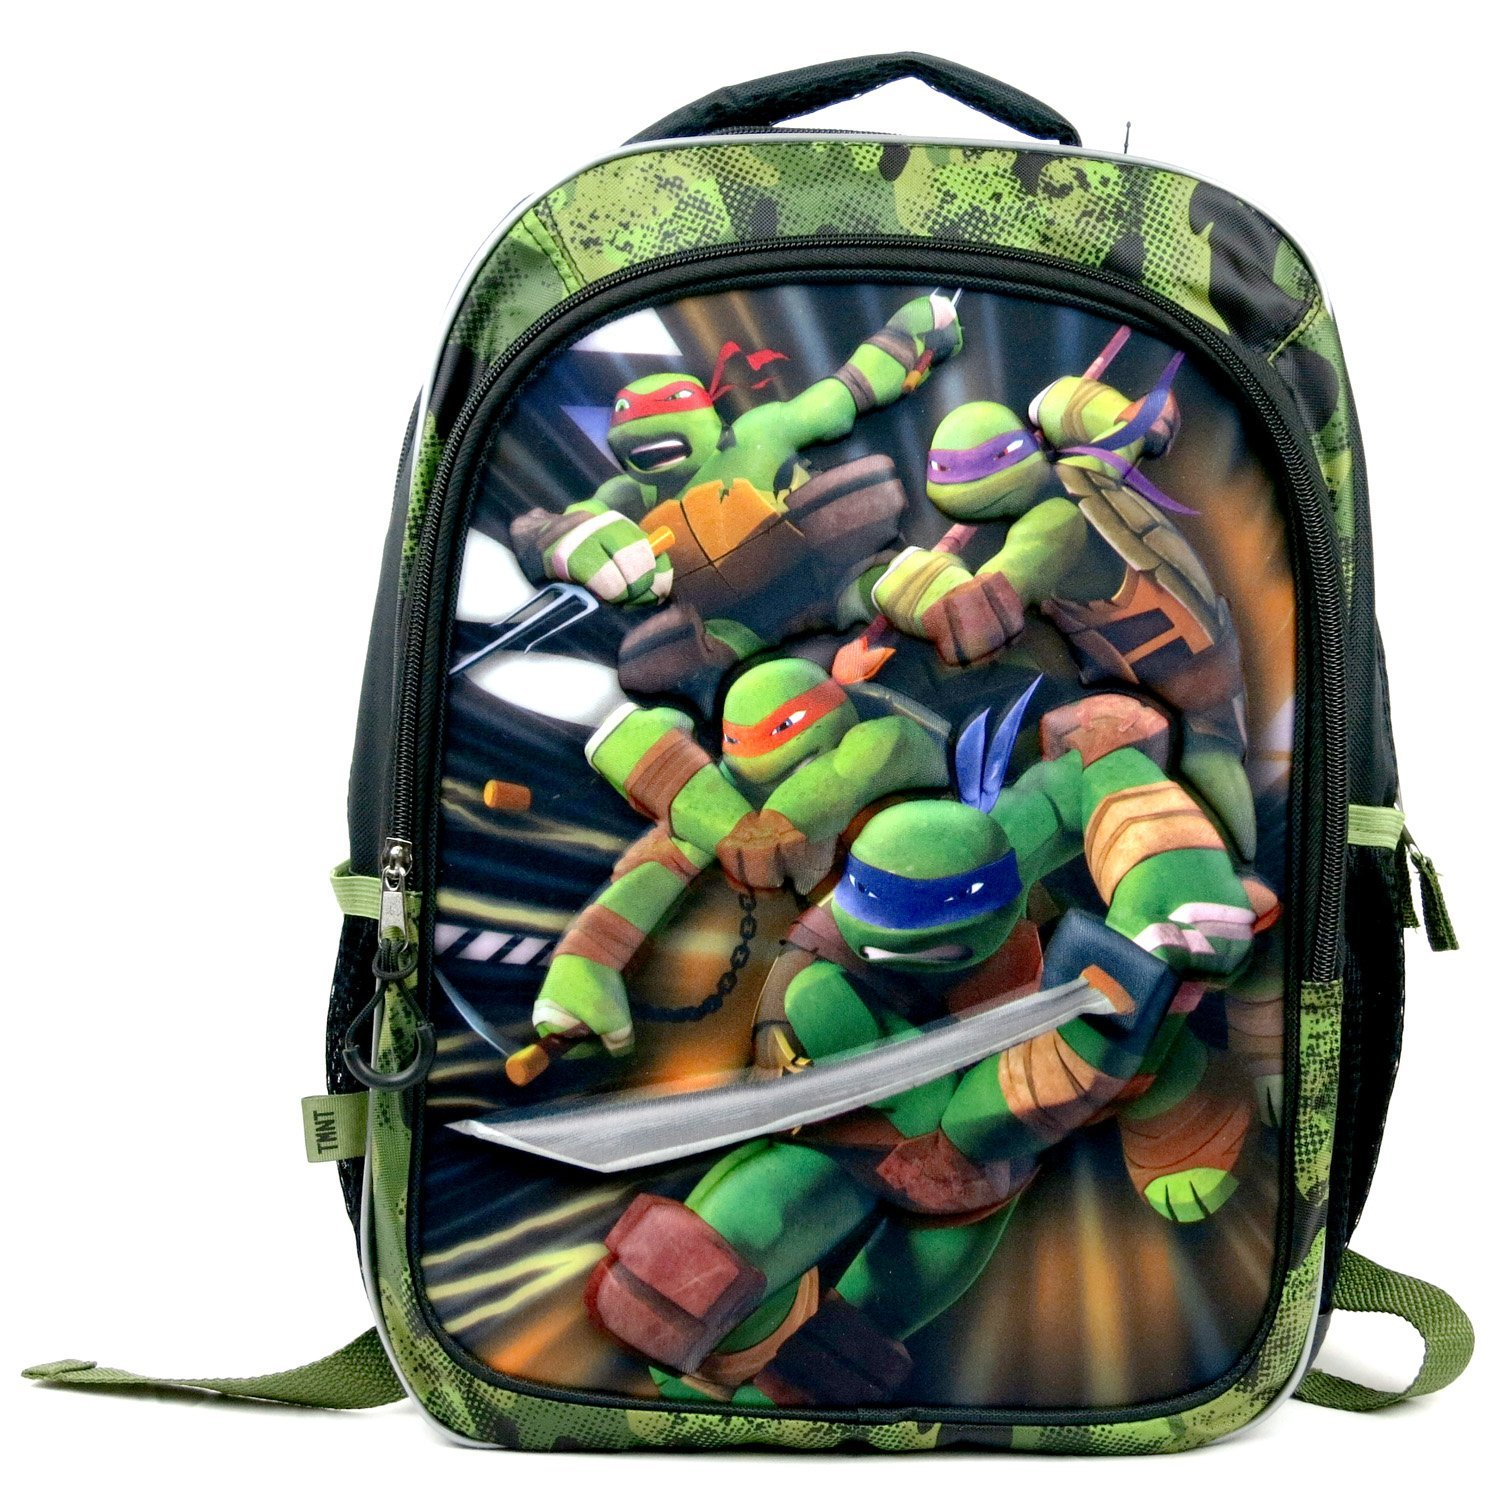 Teenage Mutant Ninja Turtles School Backpack with 3-D Foam Image of Leonardo, Mi